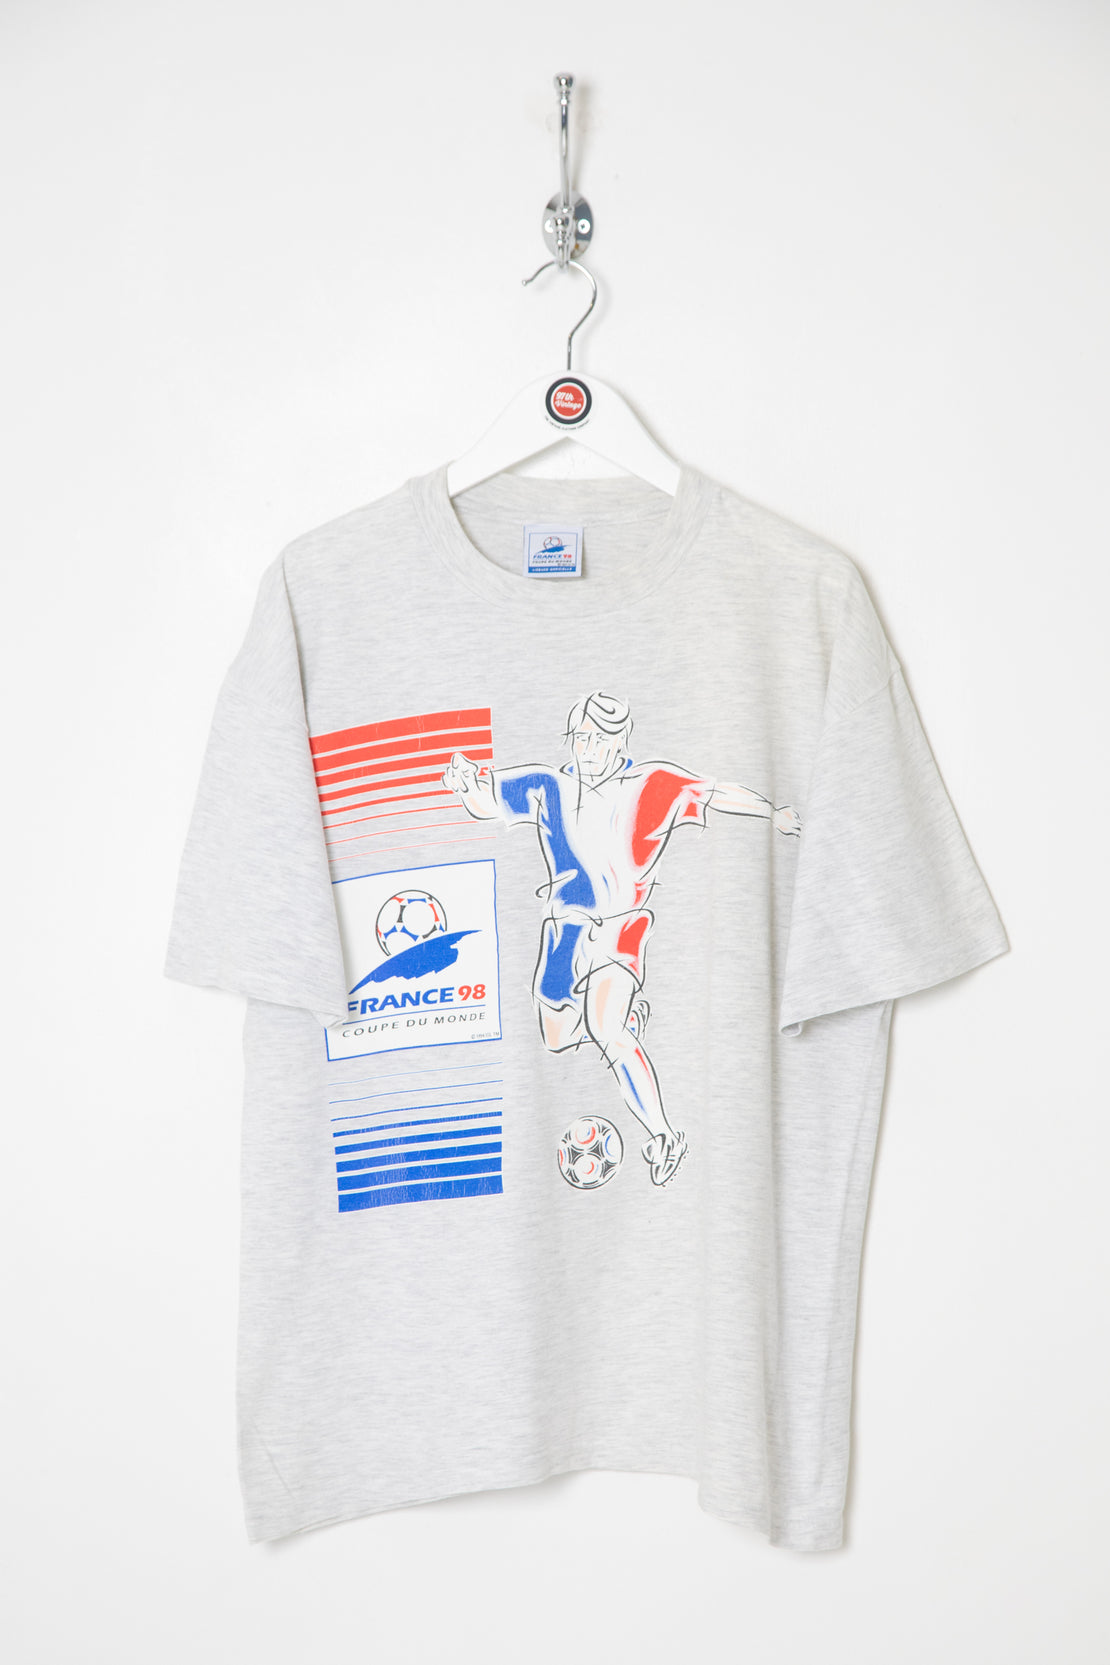 1998 France World Cup T-Shirt (M)